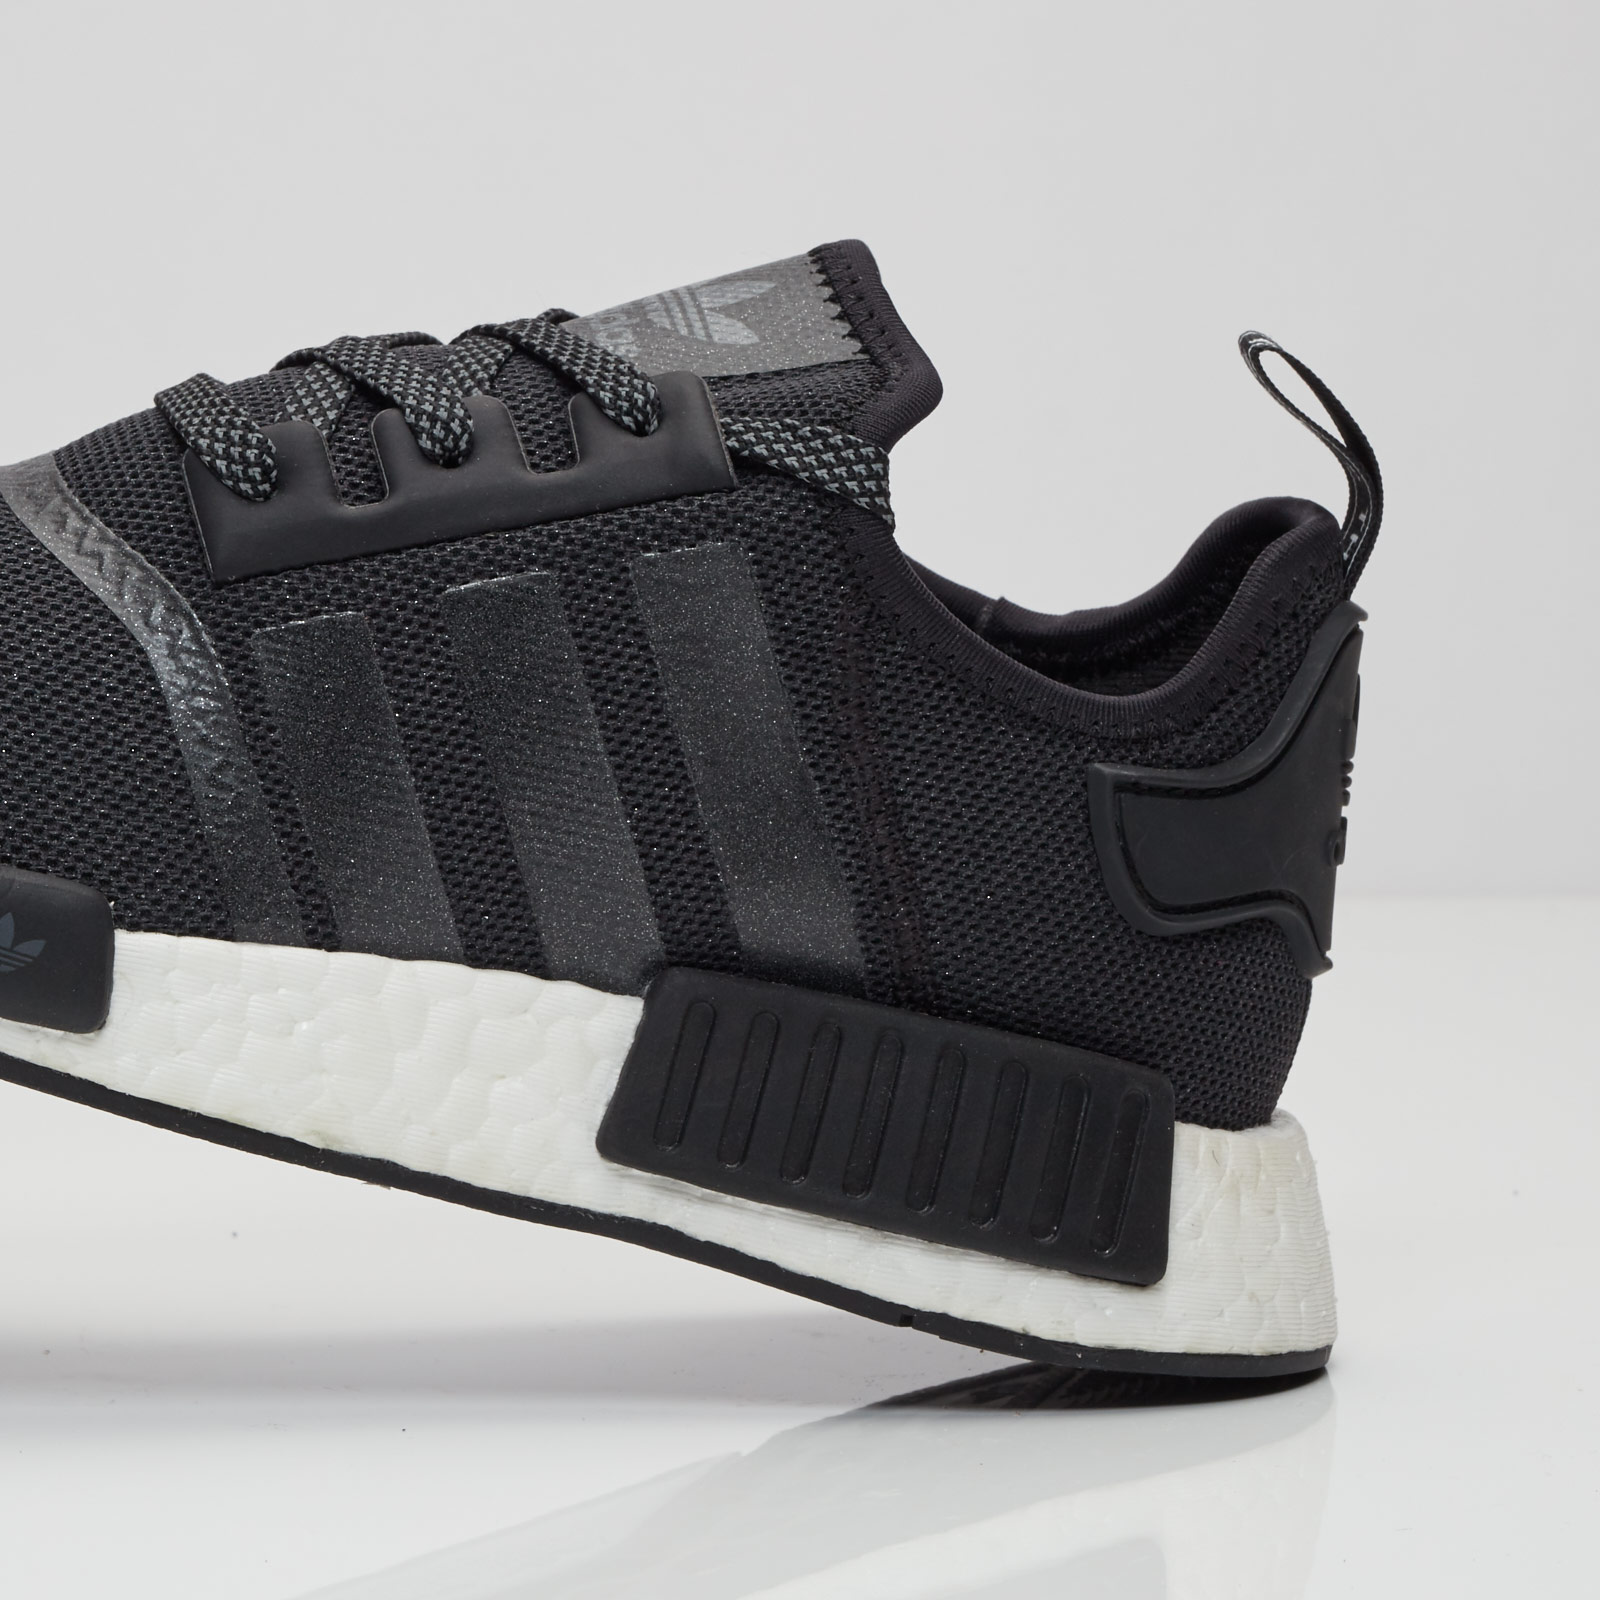 pick up 922fe bf02b adidas NMD_R1 - S31505 - Sneakersnstuff | sneakers ...